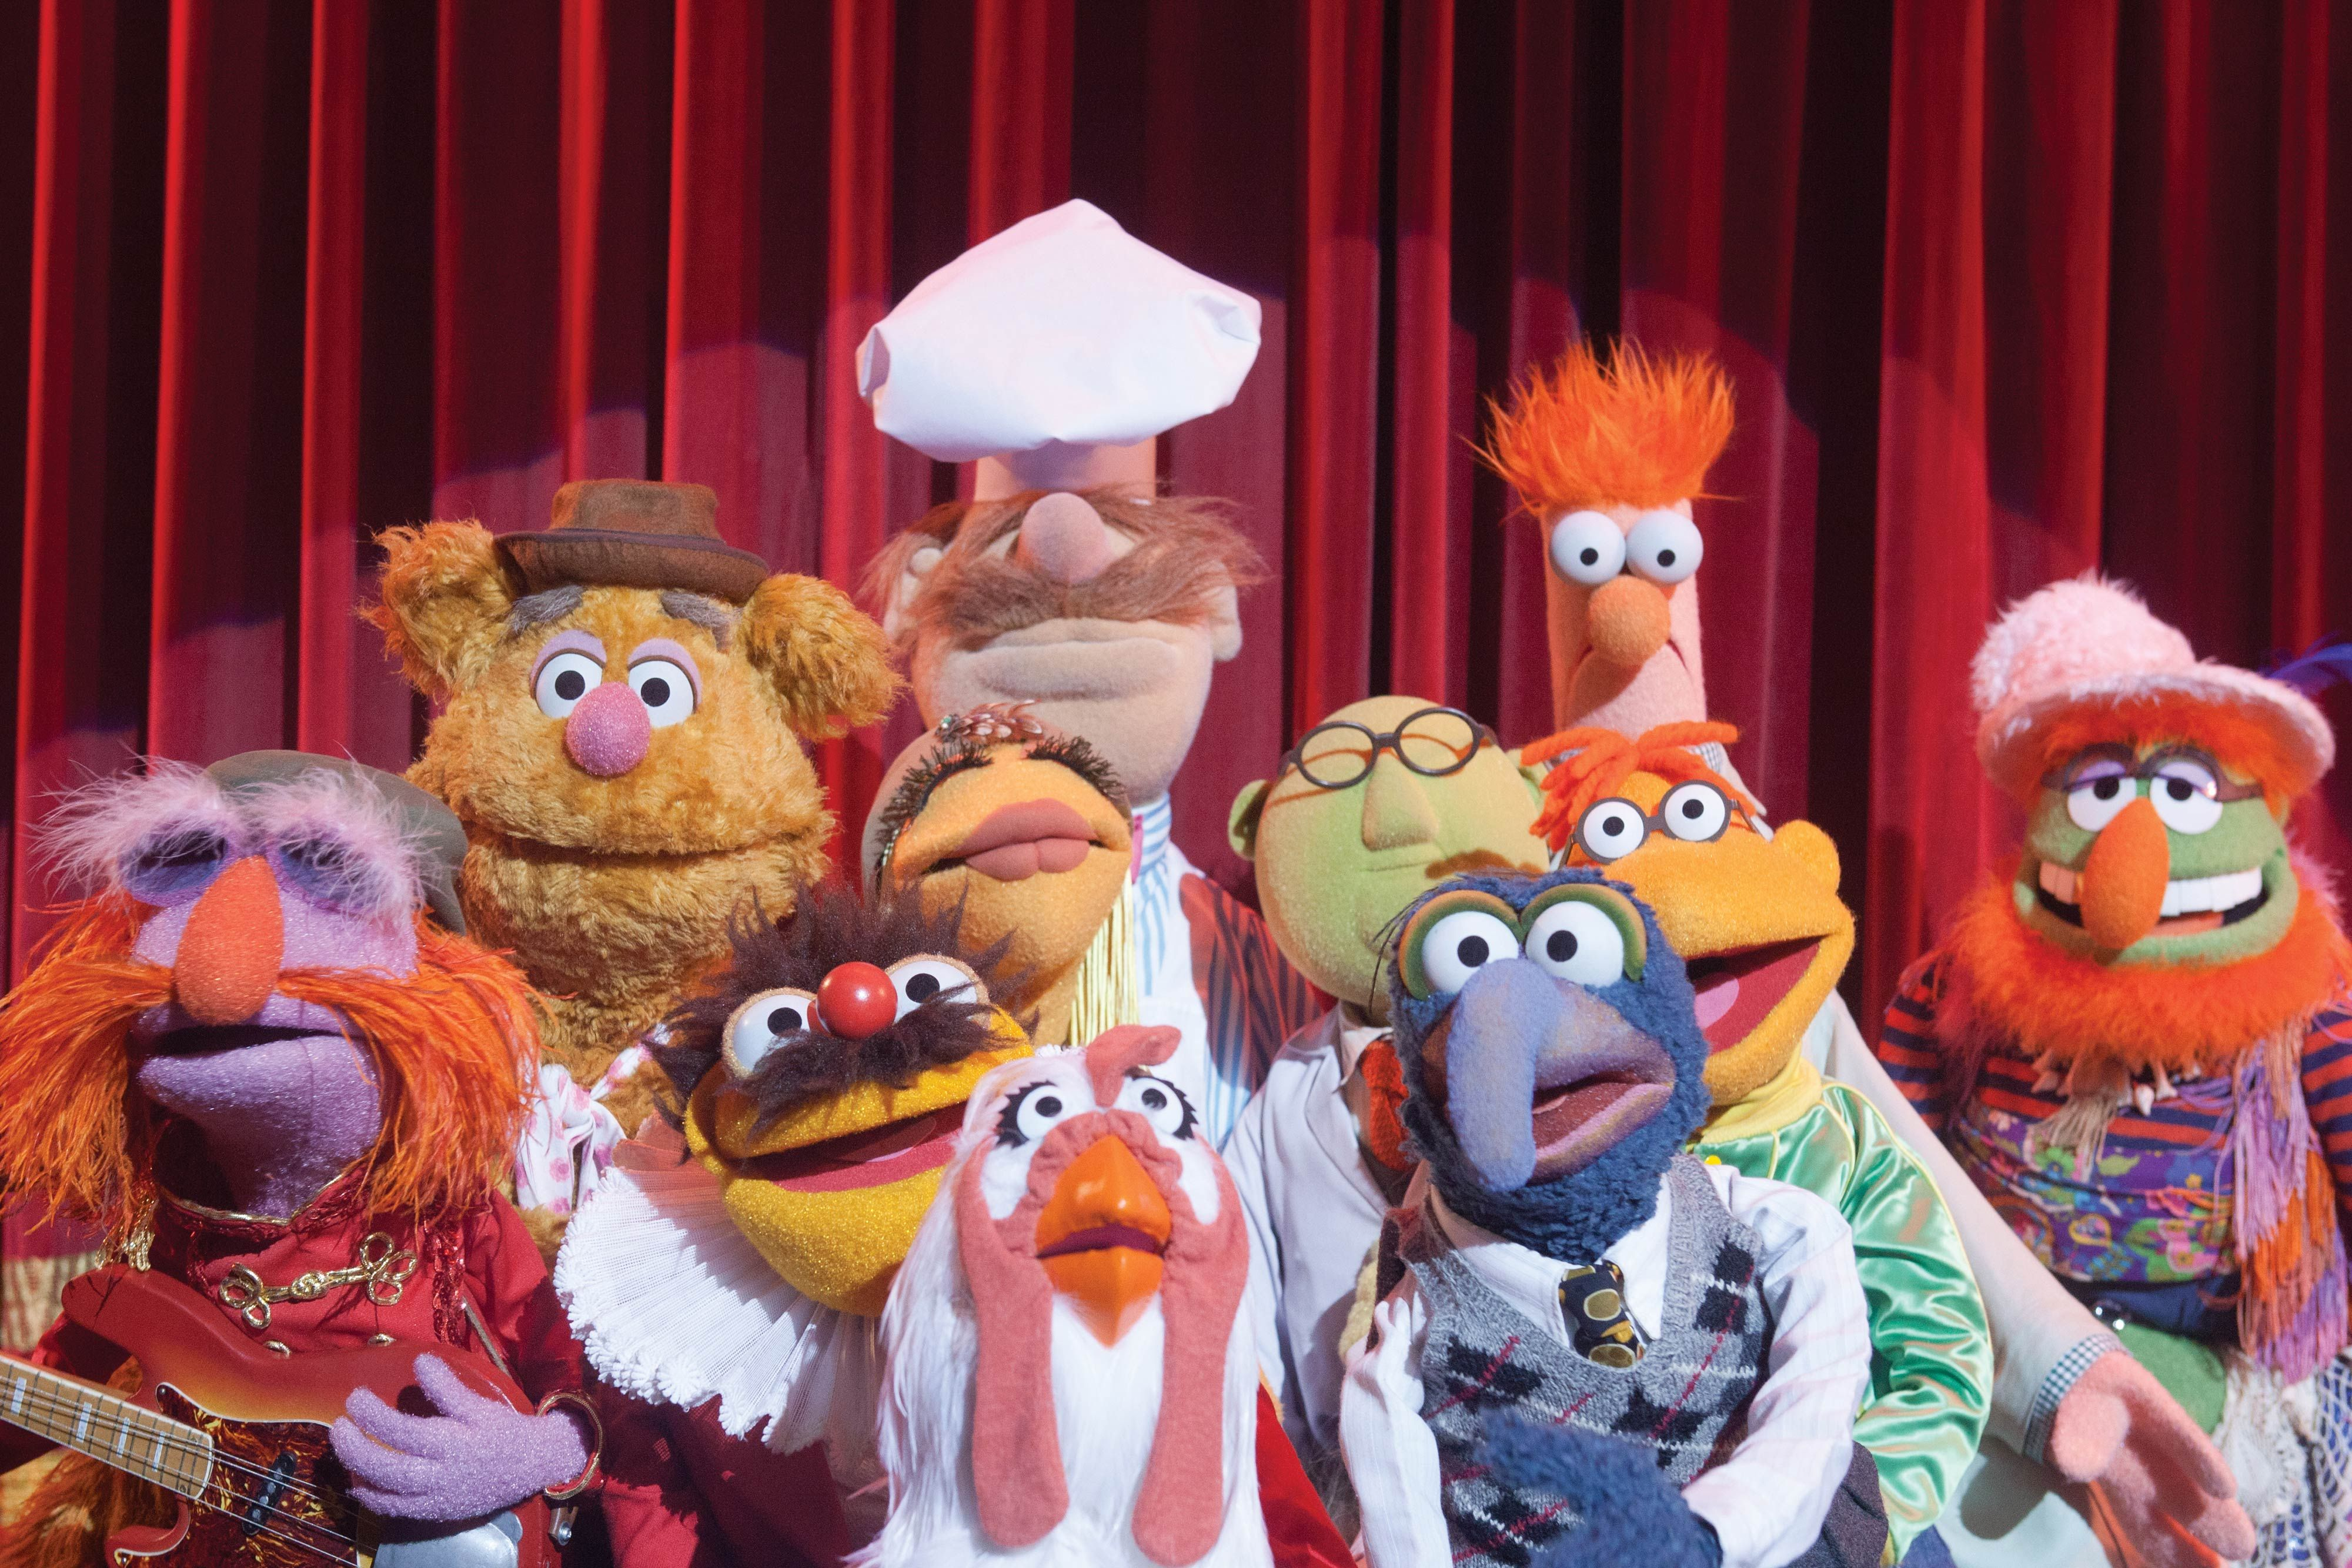 Muppets Cast The Muppets Characters The Muppet Show Muppets